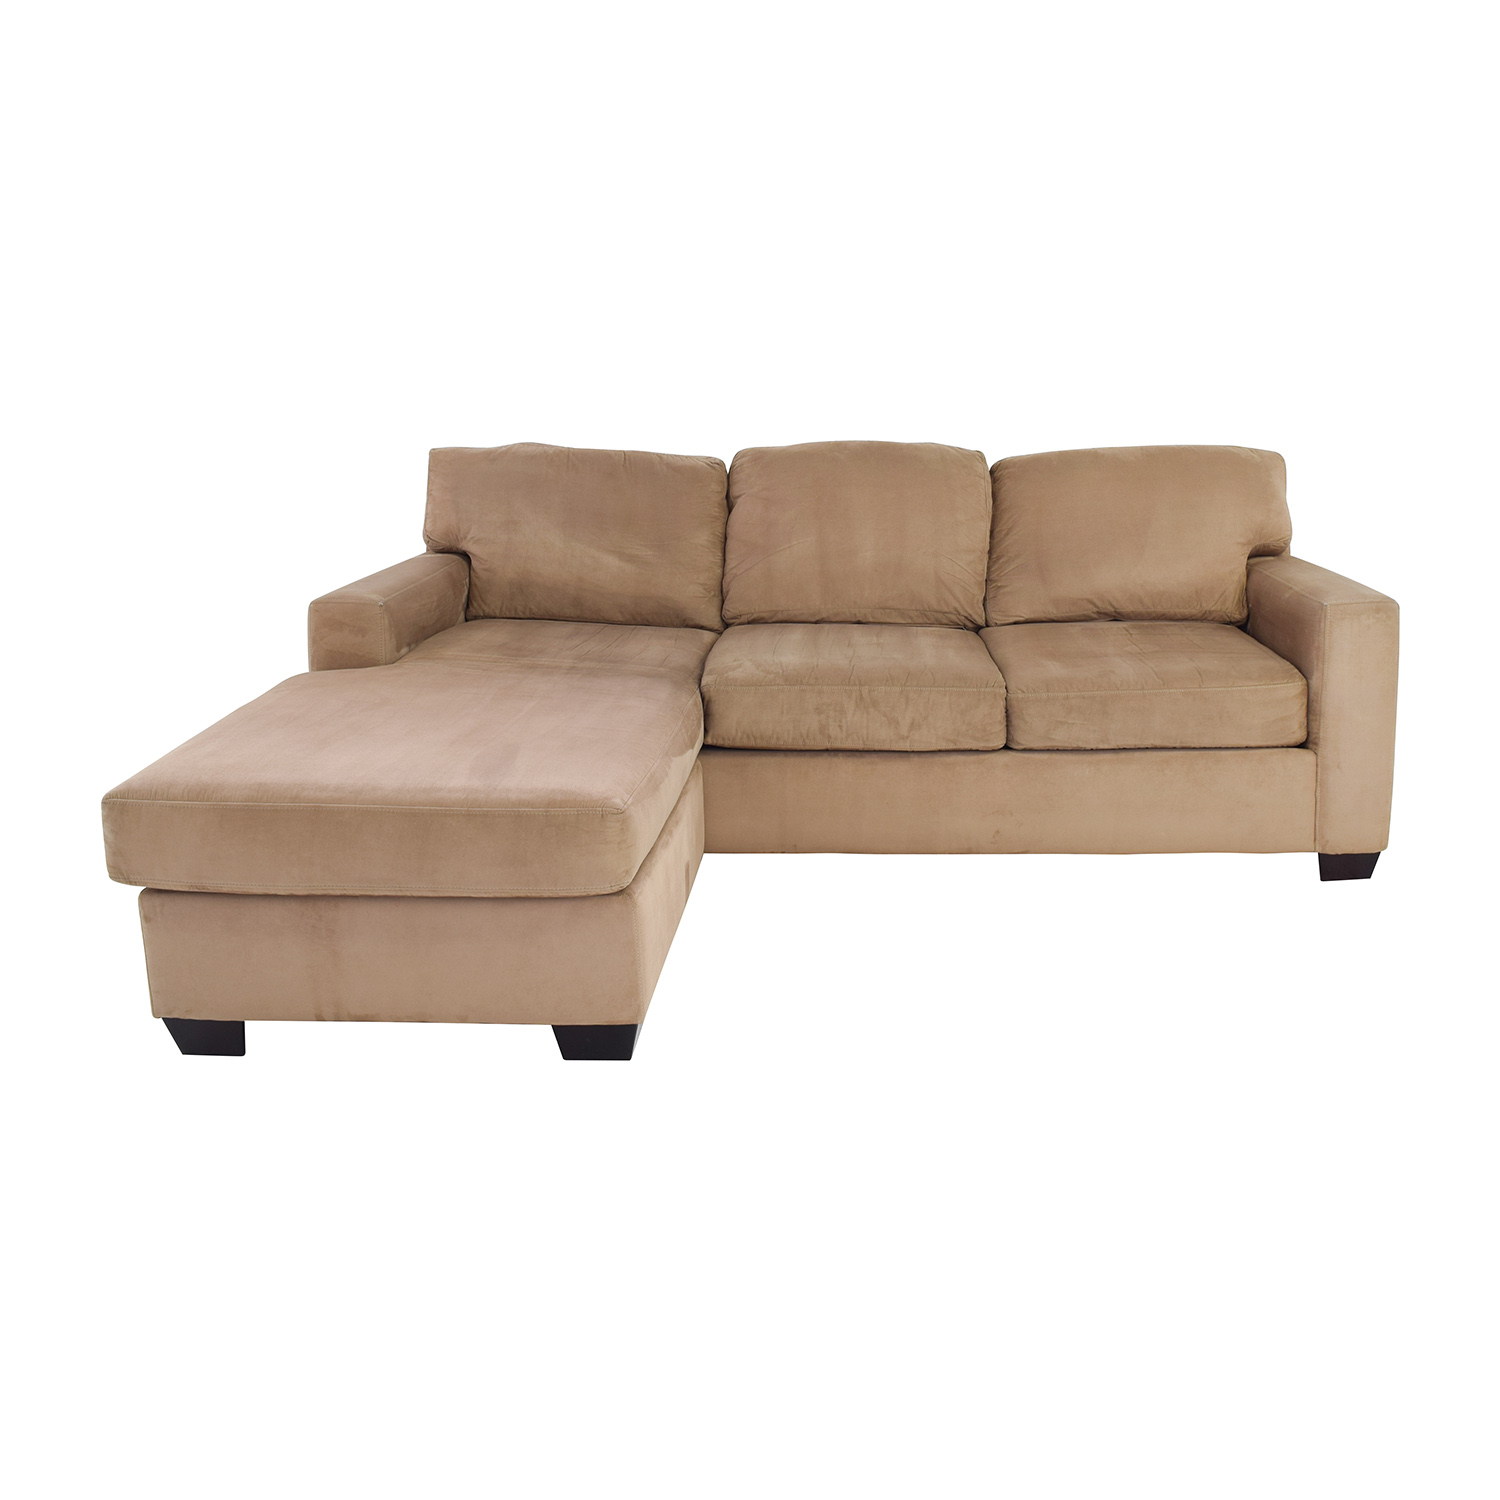 Fantastic 75 Off Max Home Max Home Tan Sectional Chaise Sofa Sofas Ocoug Best Dining Table And Chair Ideas Images Ocougorg